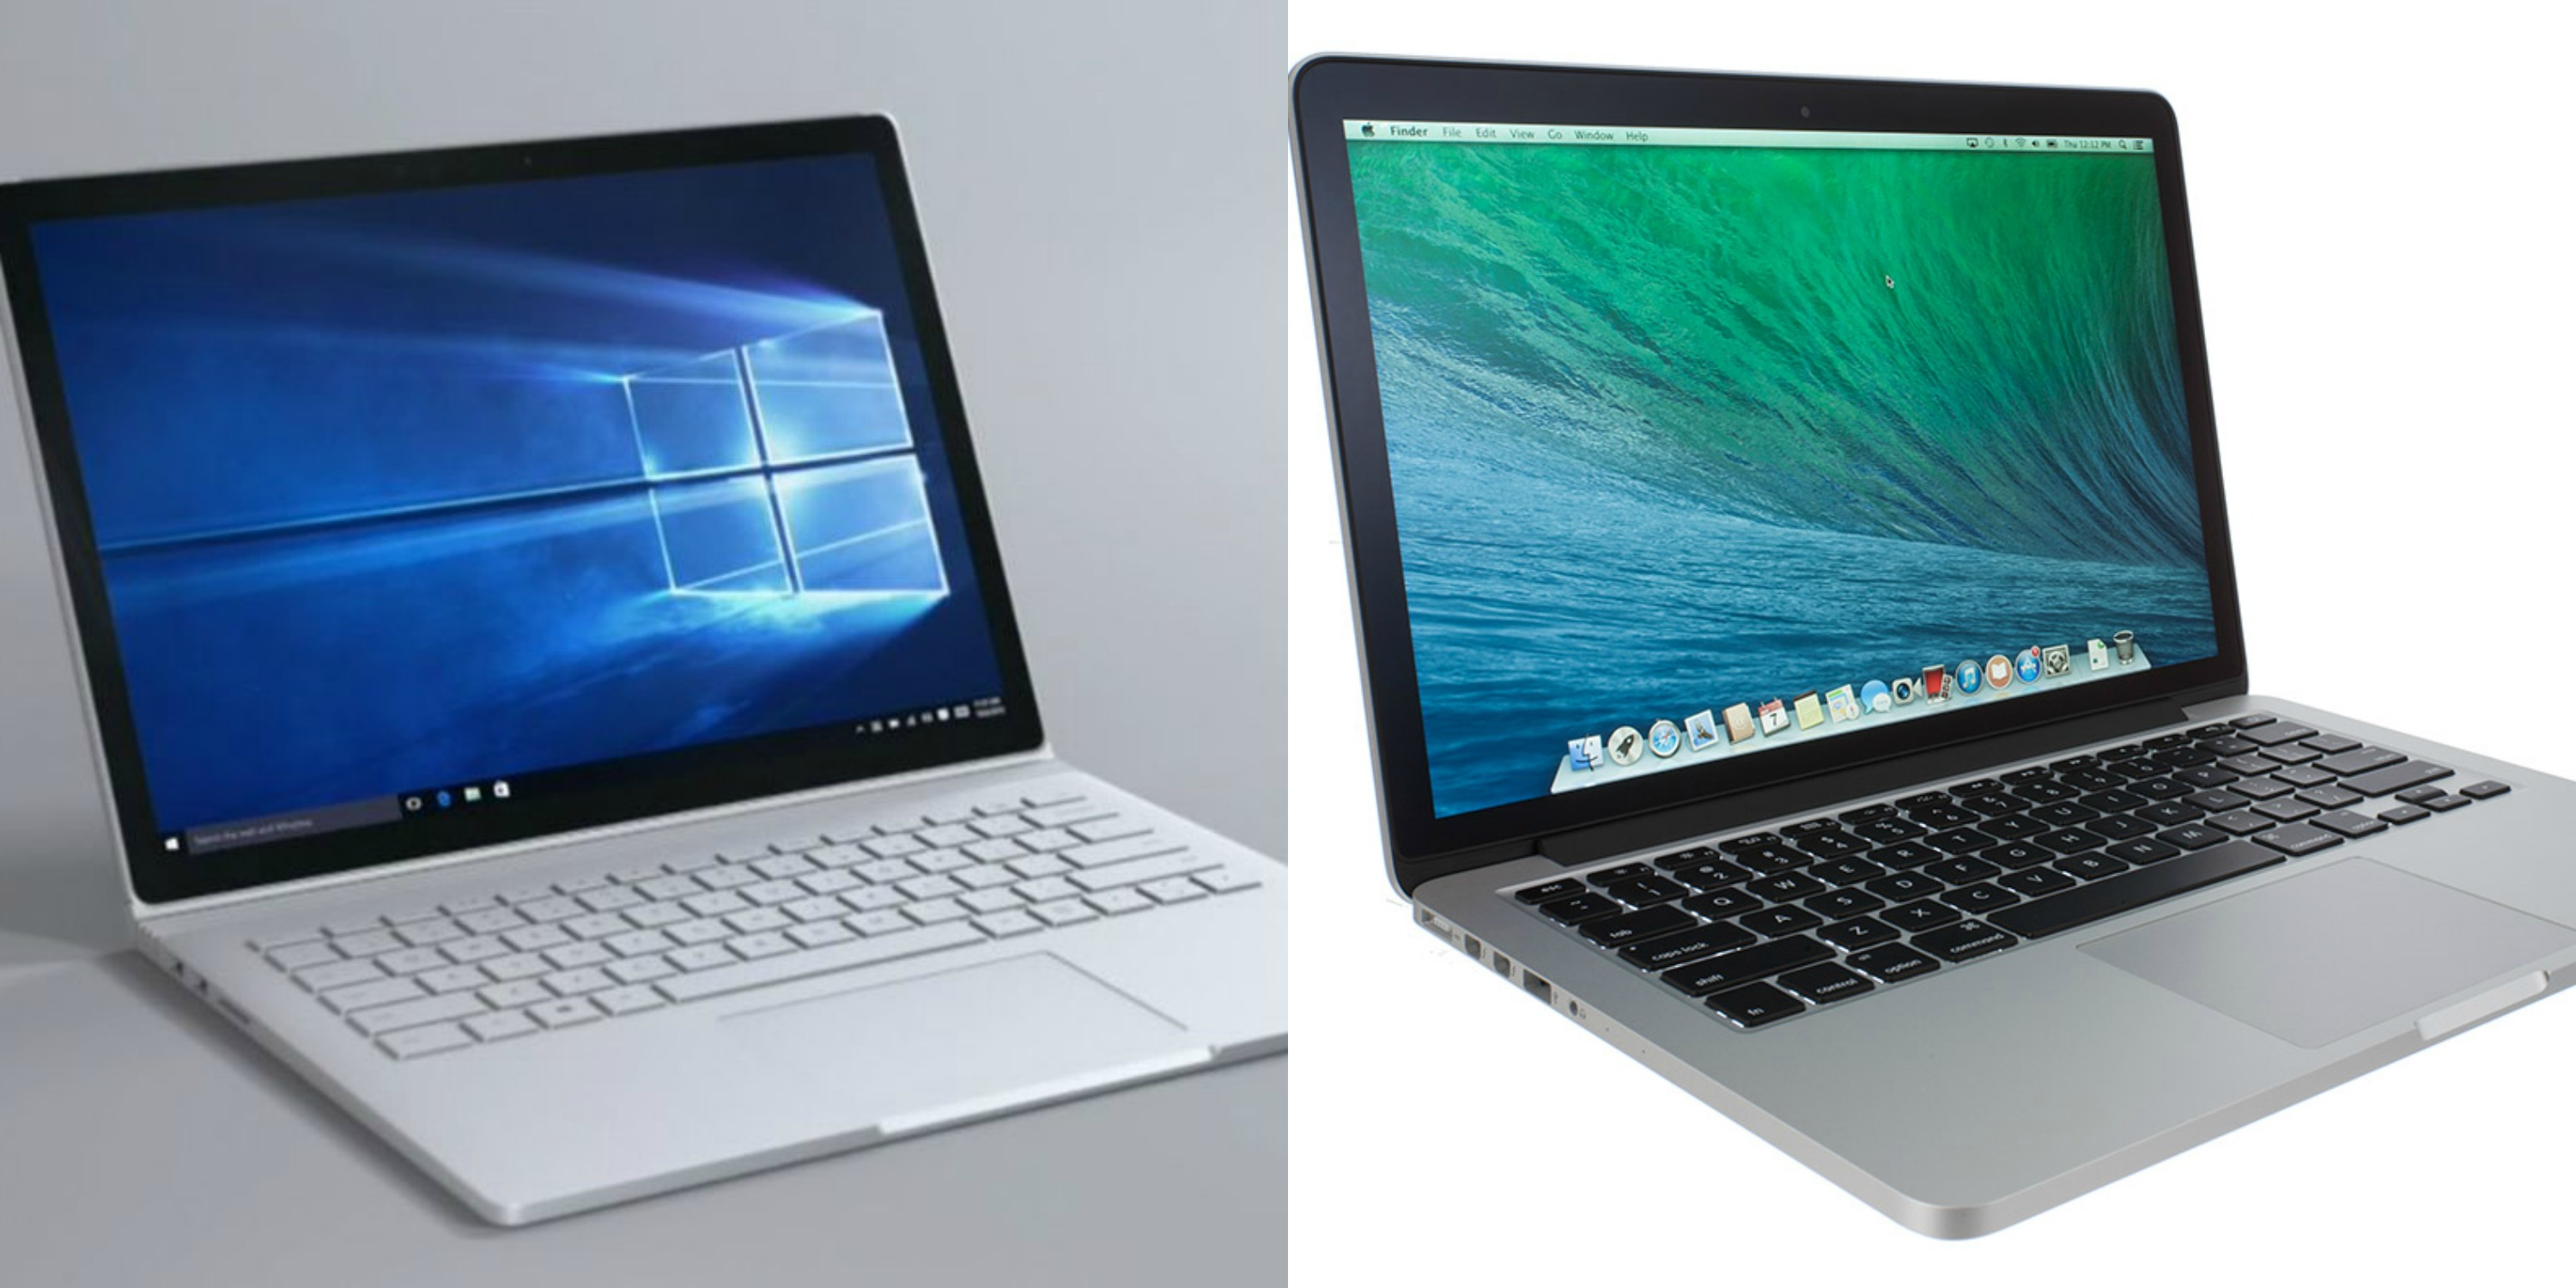 A side-to-side comparison between the Surface Book and Macbook Pro.